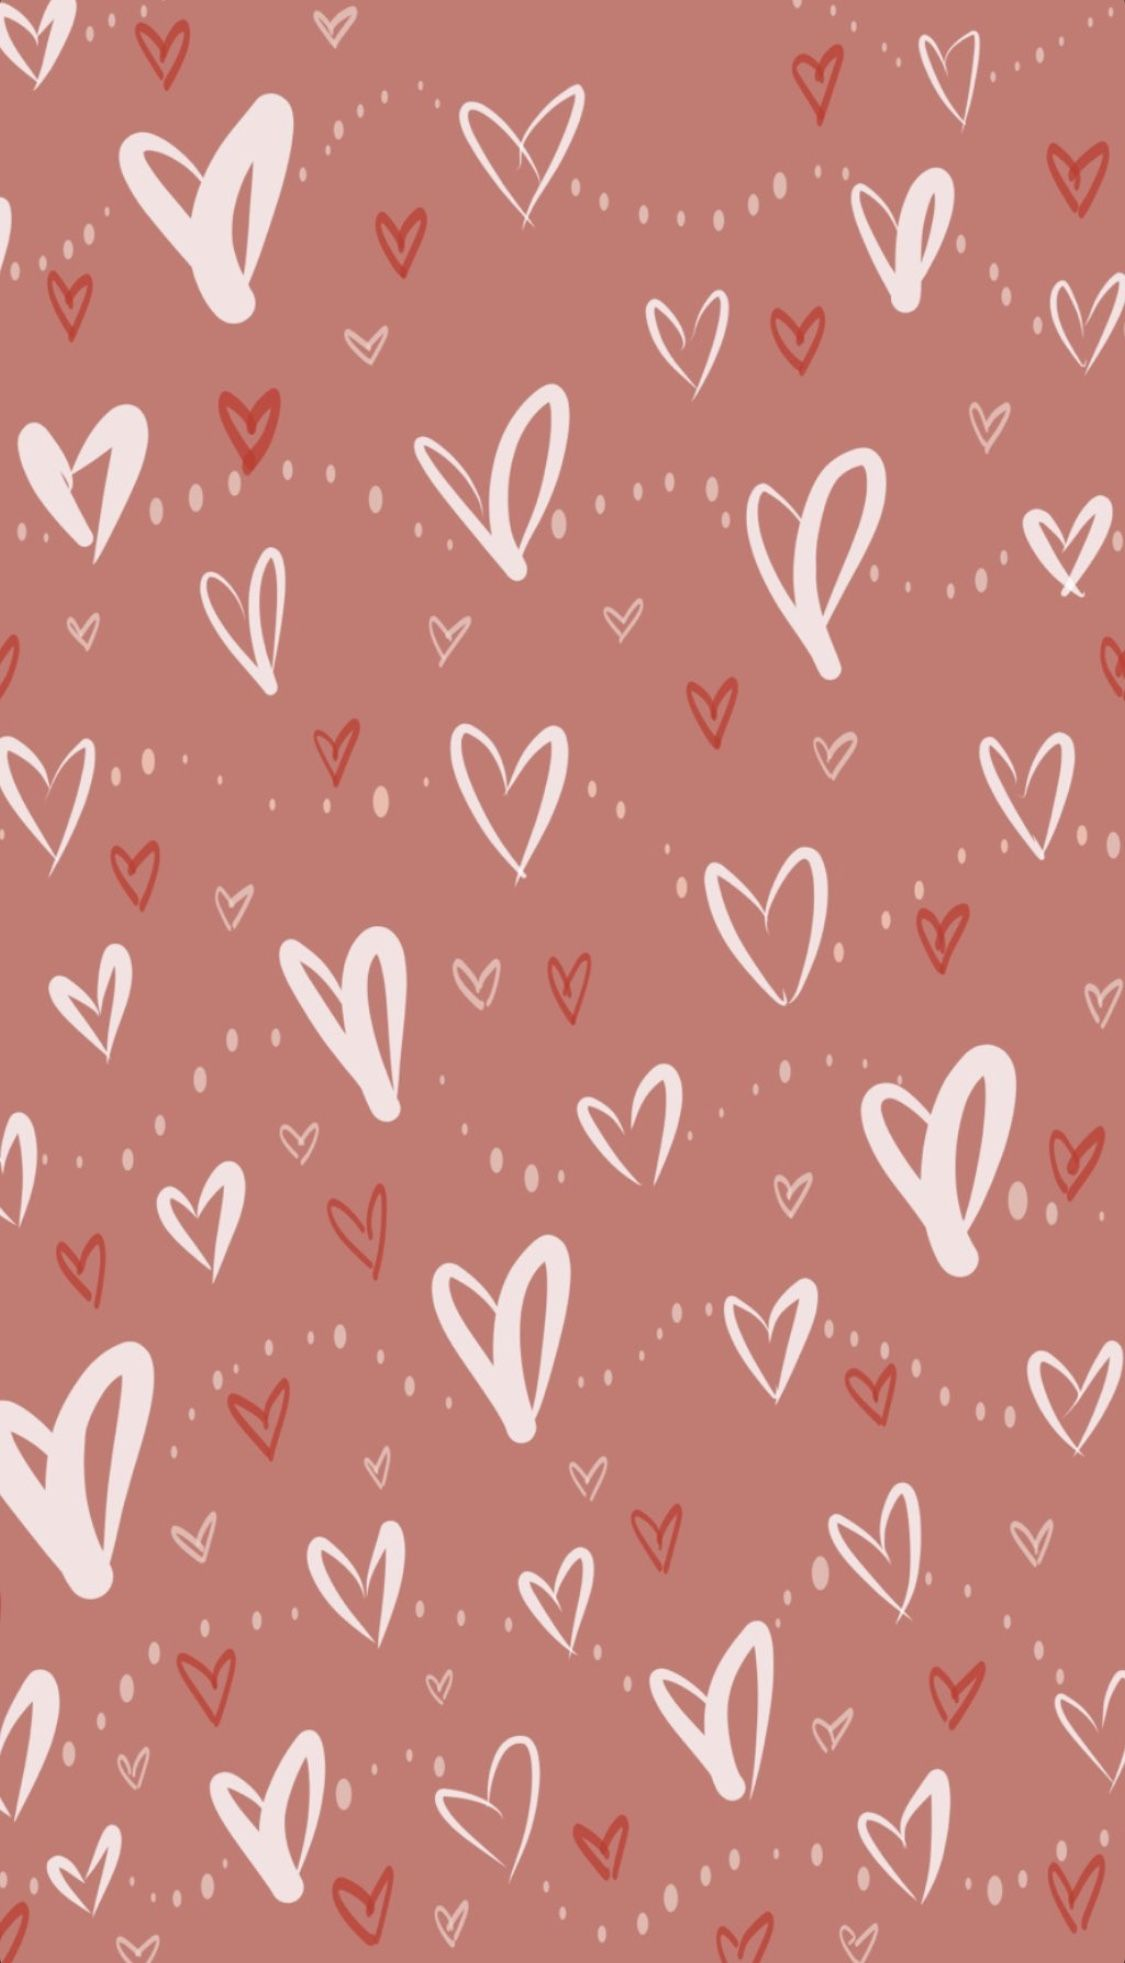 Iphone Wallpaper Valentine S Day Tjn Valentines Wallpaper Iphone Valentines Wallpaper Cool Wallpapers For Phones